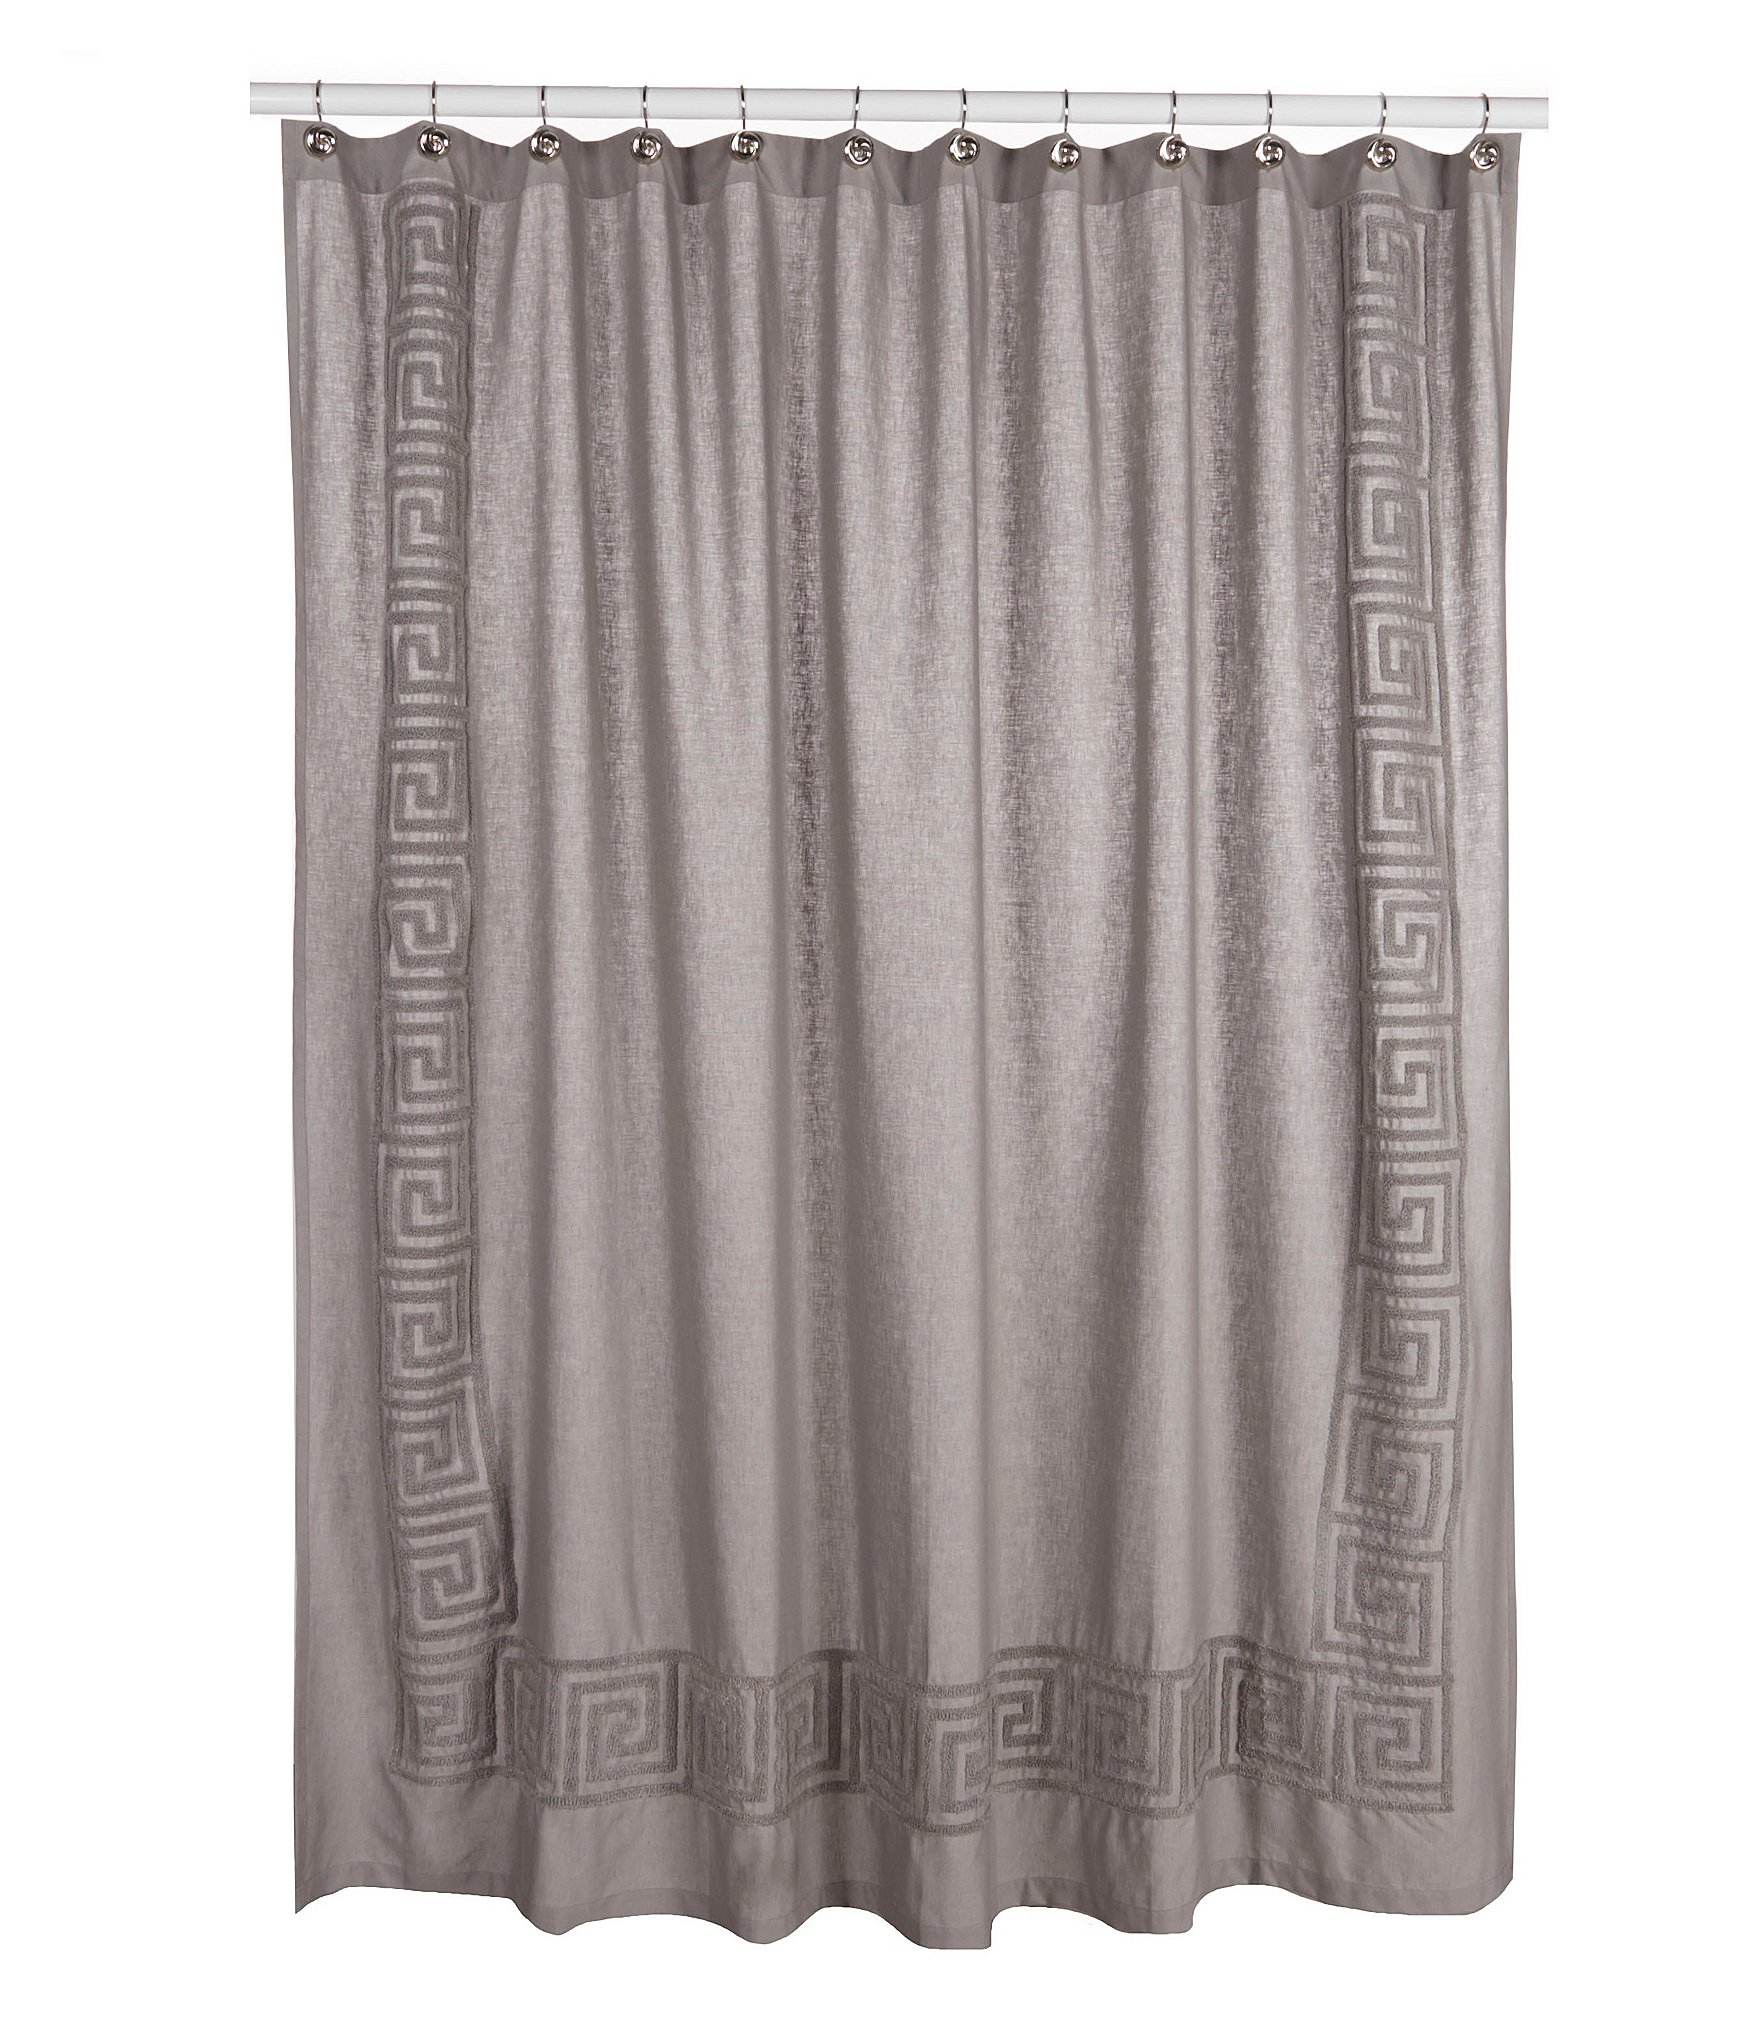 grey linen shower curtain. Home  Bath Personal Care Shower Curtains Rings Dillards com